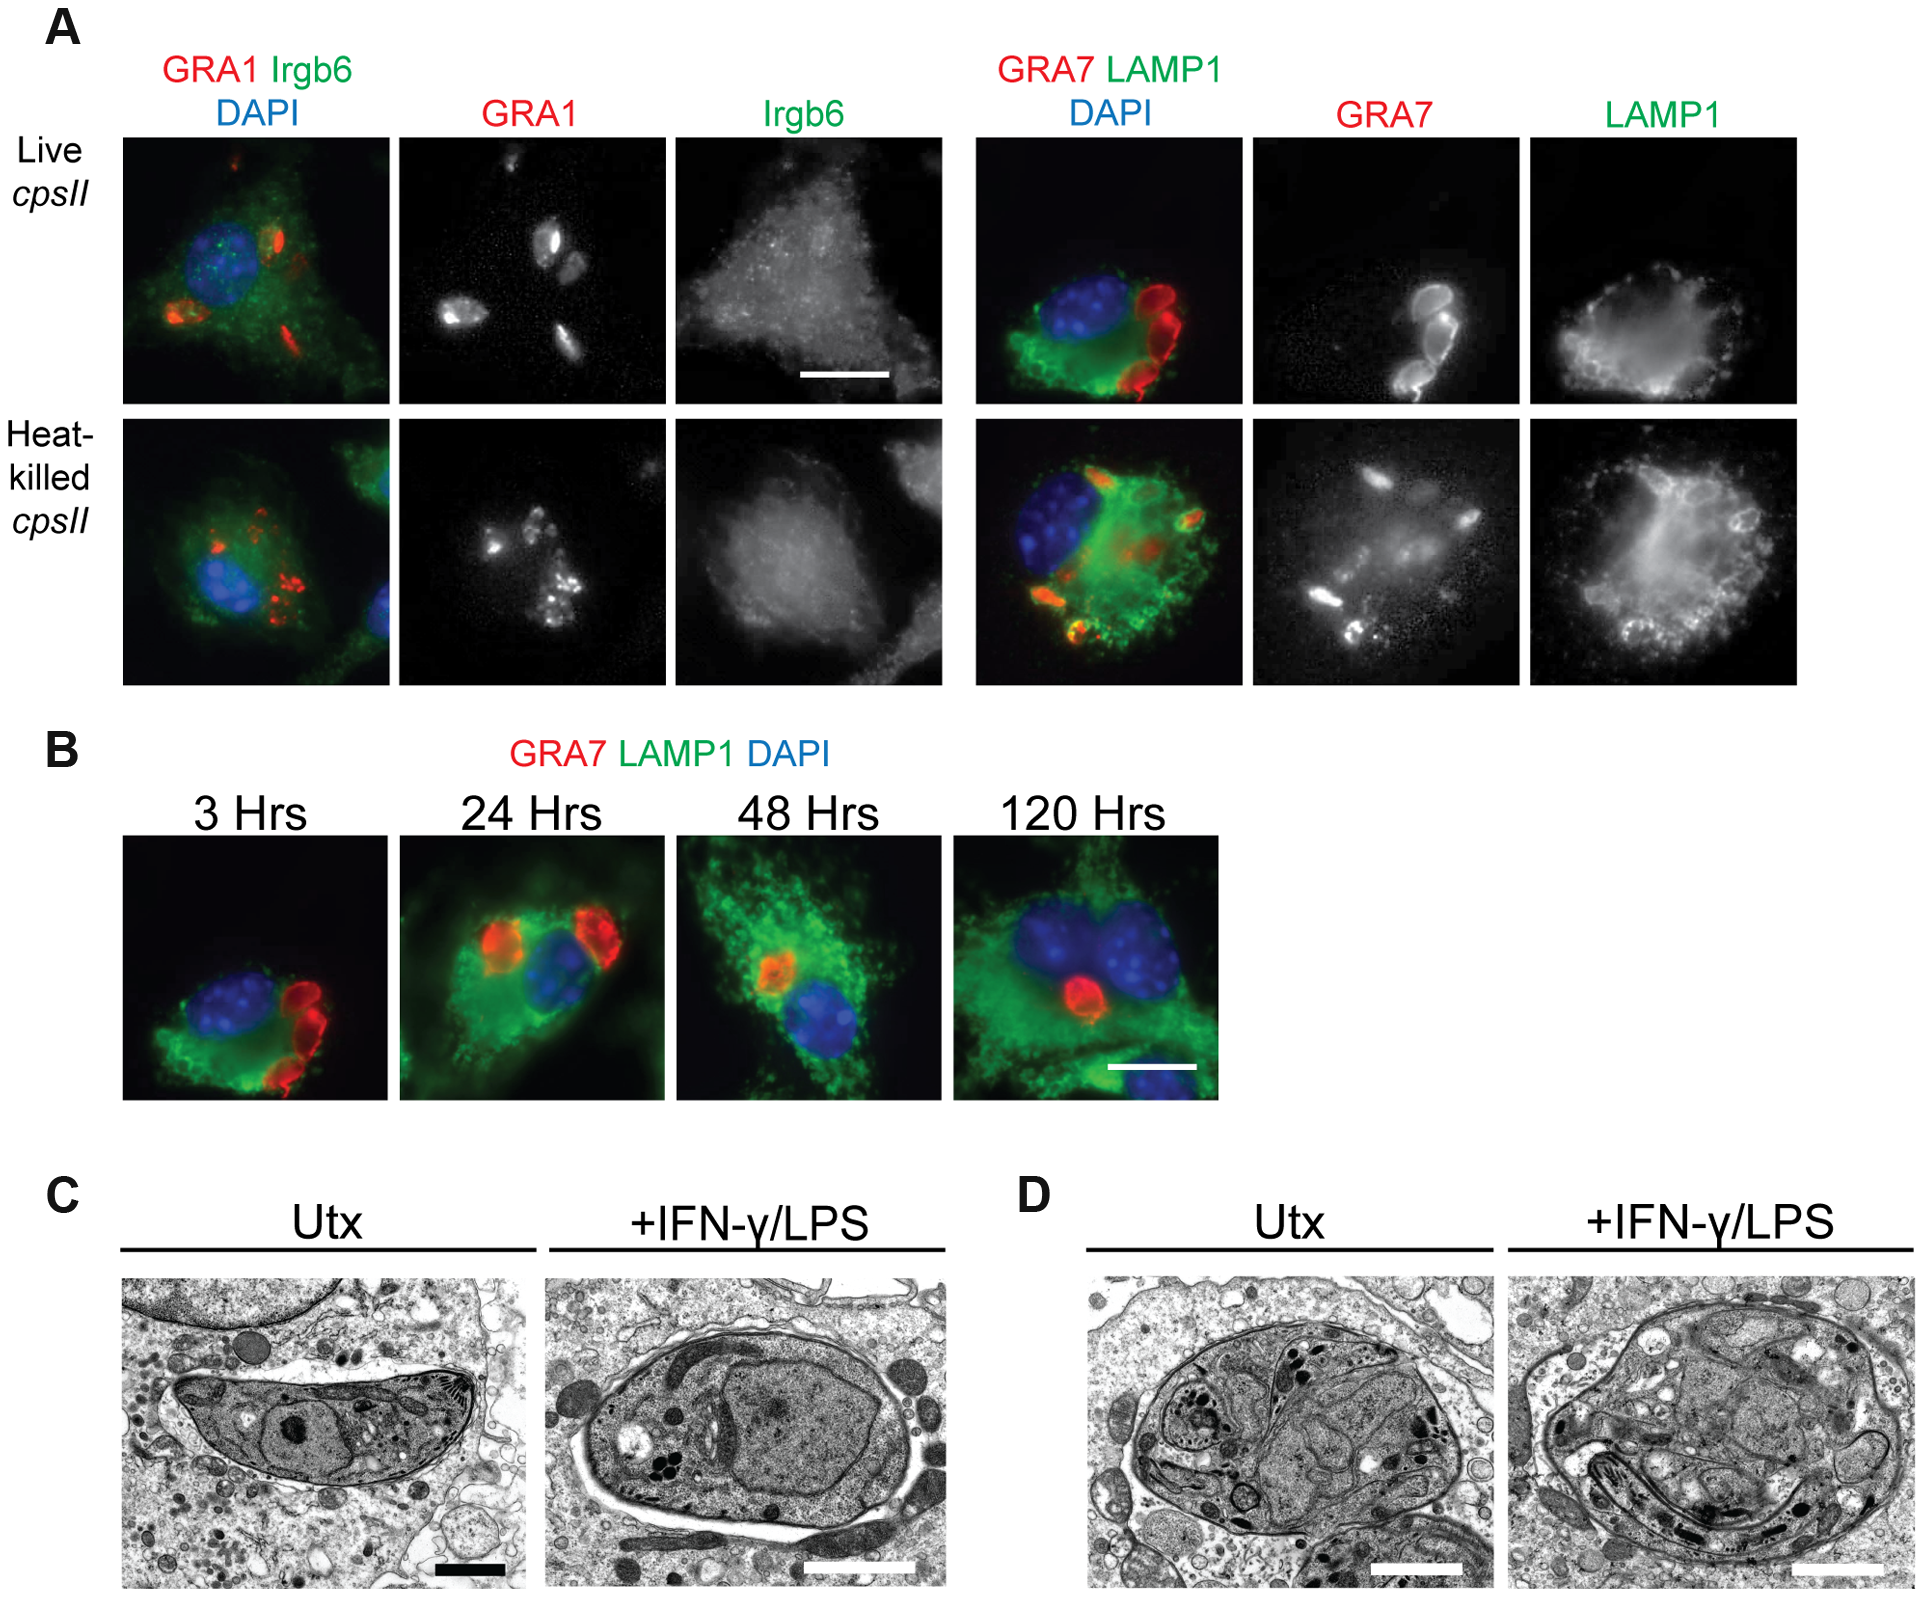 The fate of heat-killed and live <i>cpsII</i> parasites in host cells.